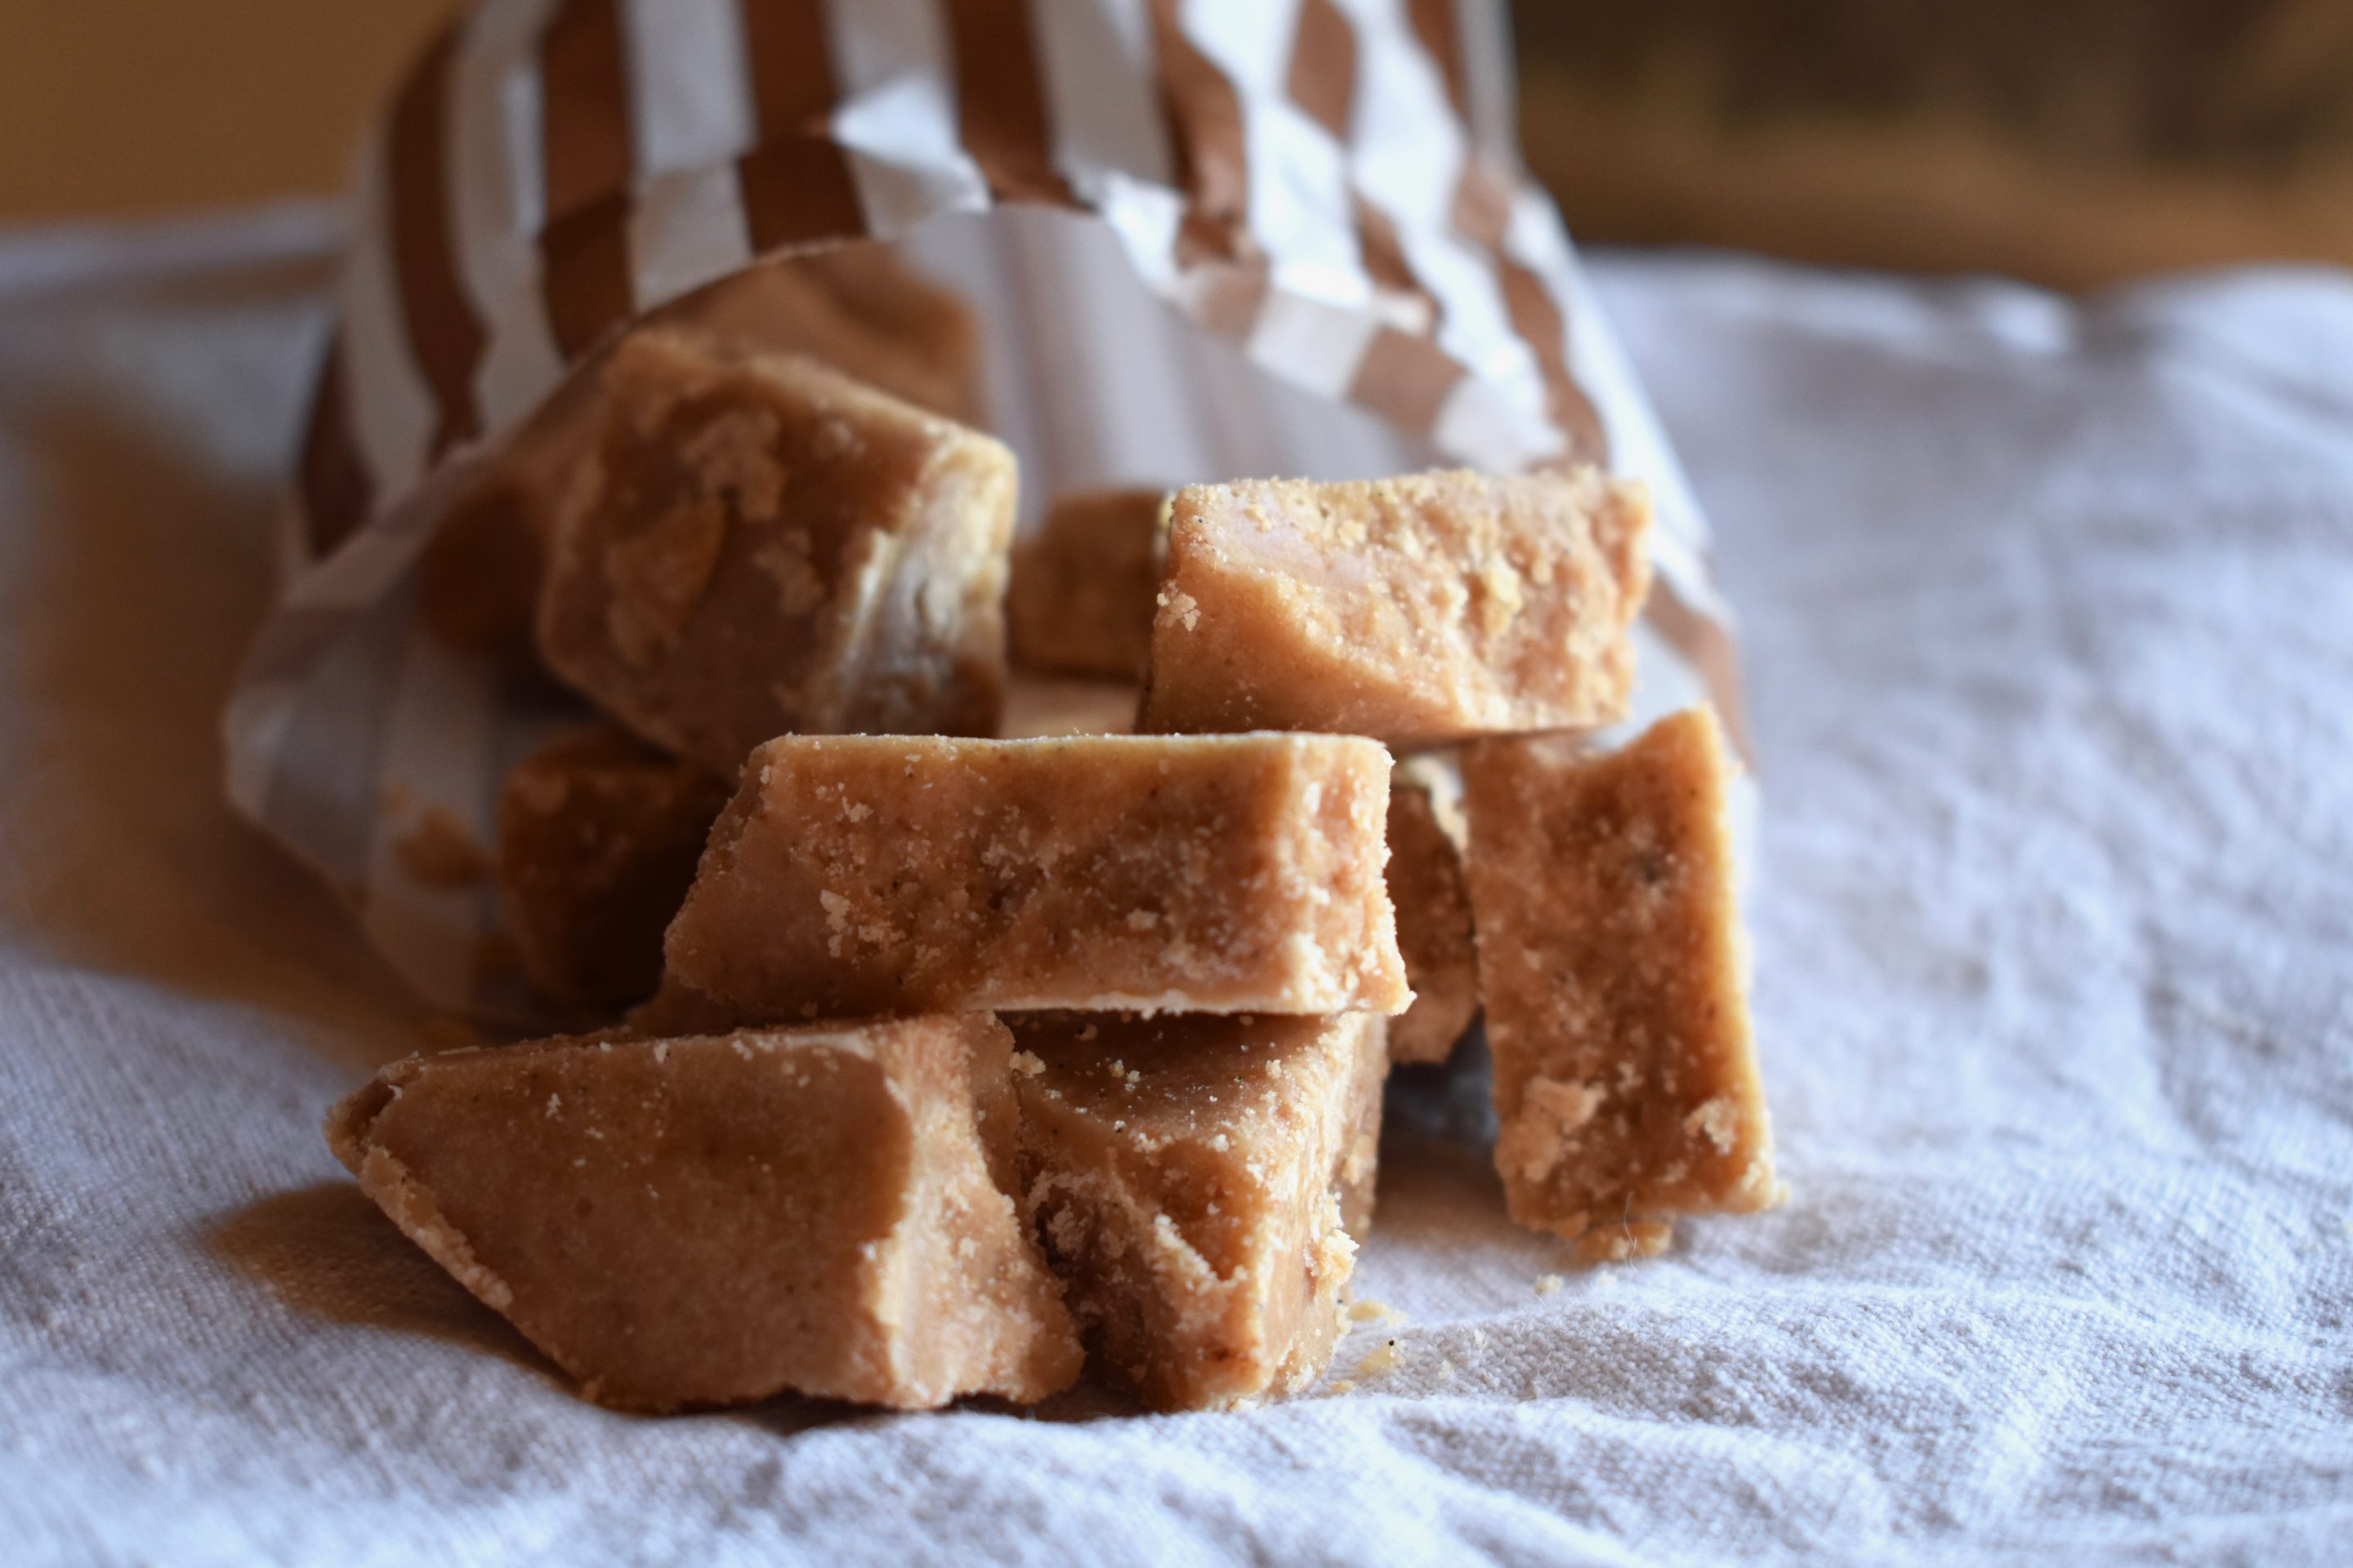 Krówki, Polish Milk Fudge